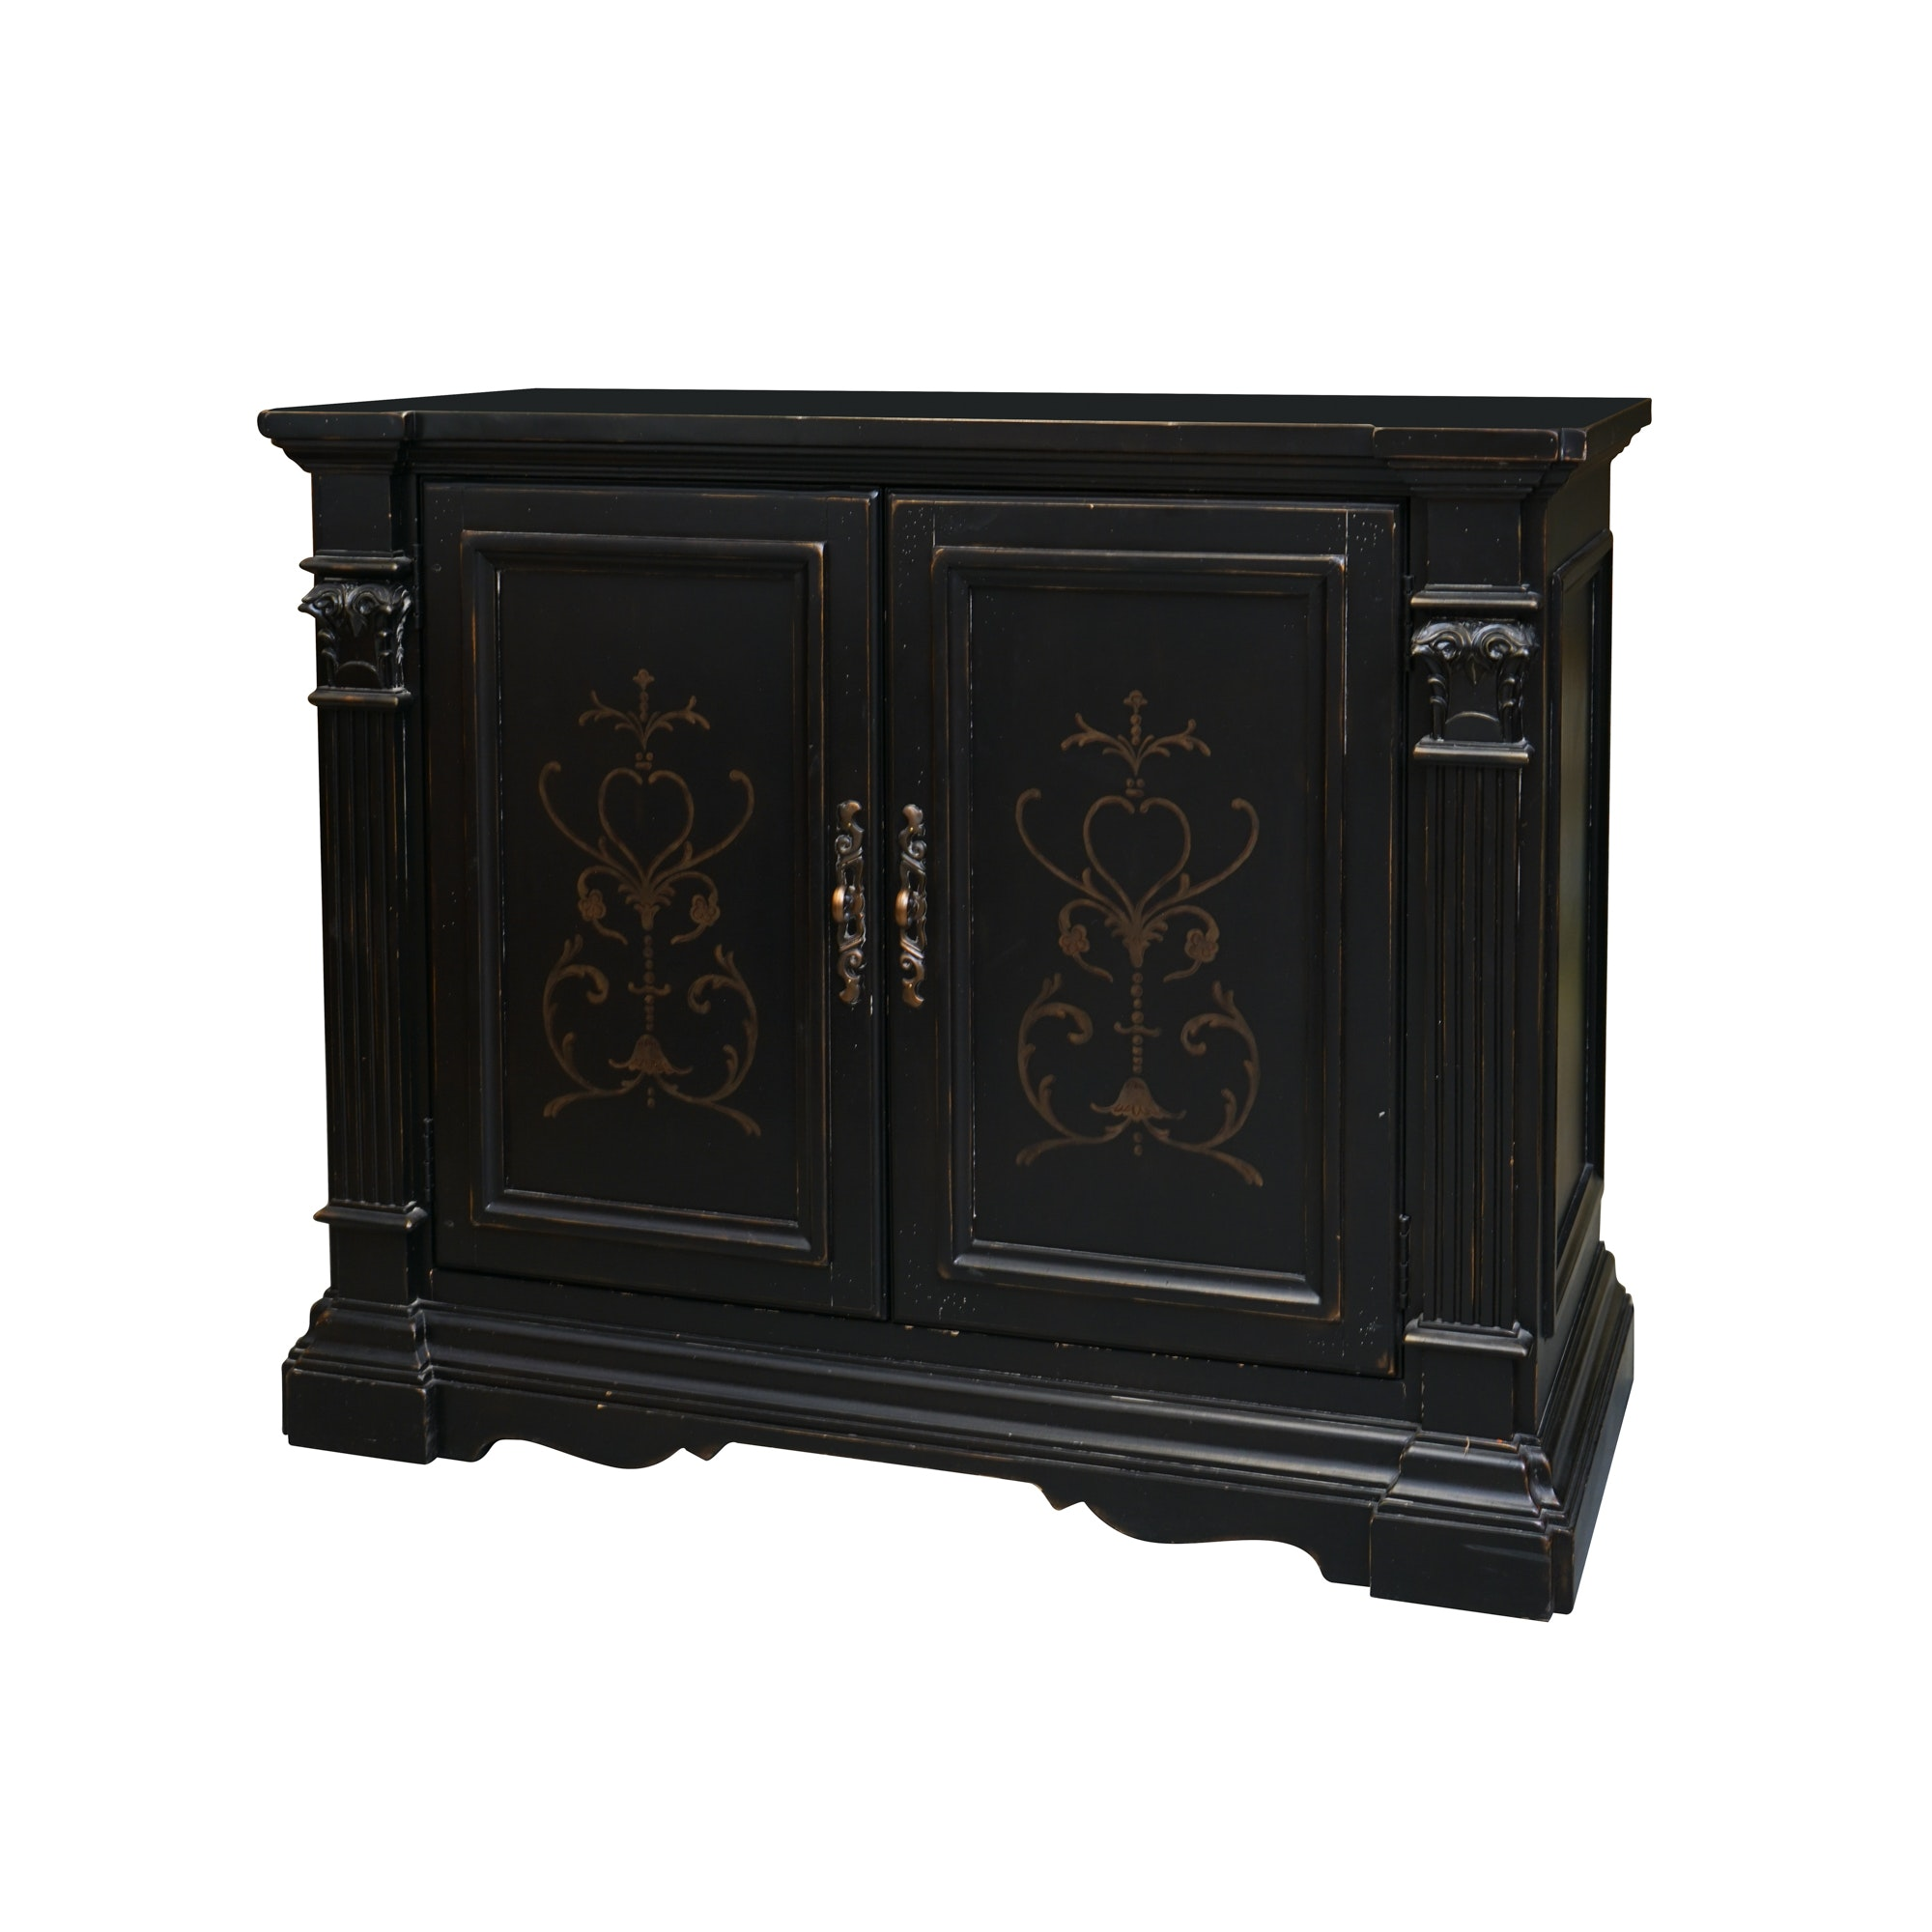 Ebonized Neoclassical Style Credenza with Gold Painted and Columnar Accents